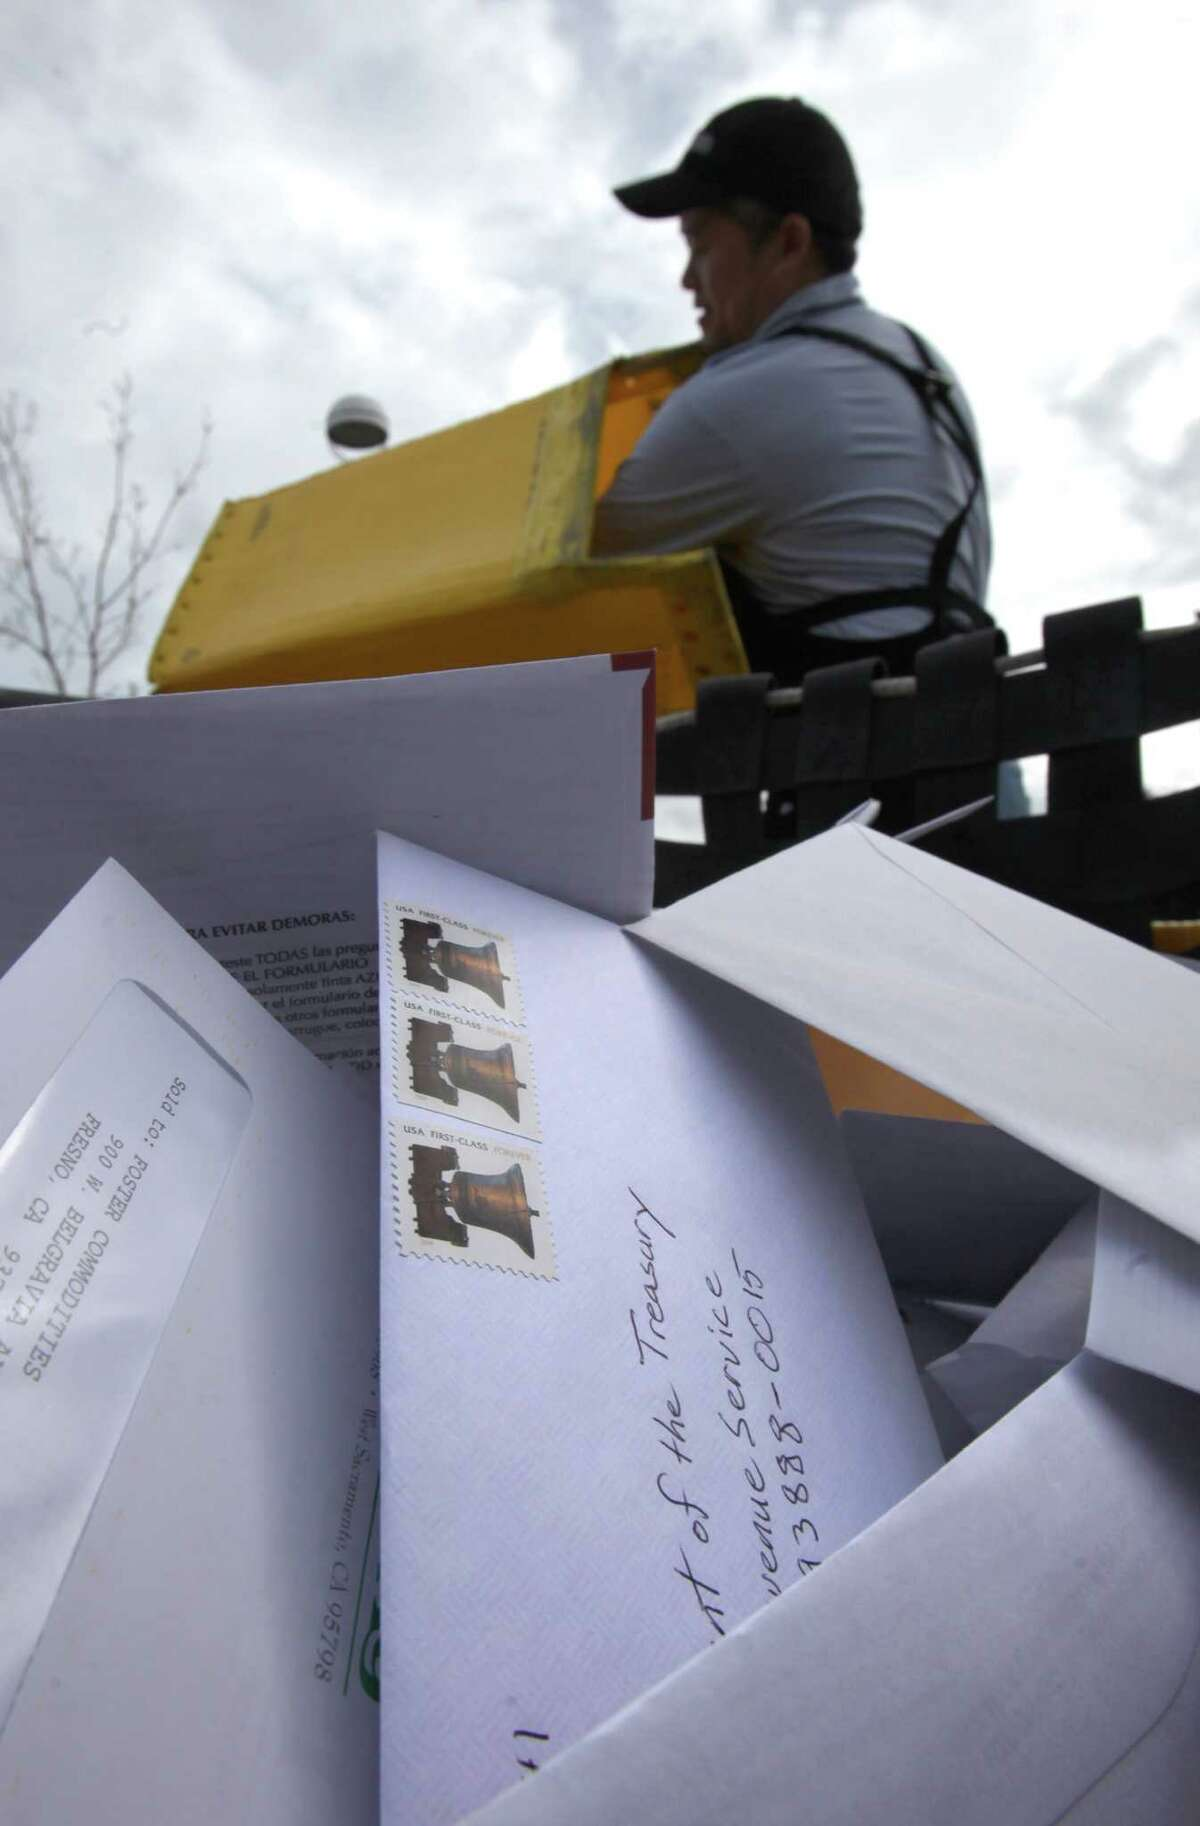 The federal income-tax filing deadline is rapidly approaching. People who are mailing their tax forms have until Monday to get their return postmarked.